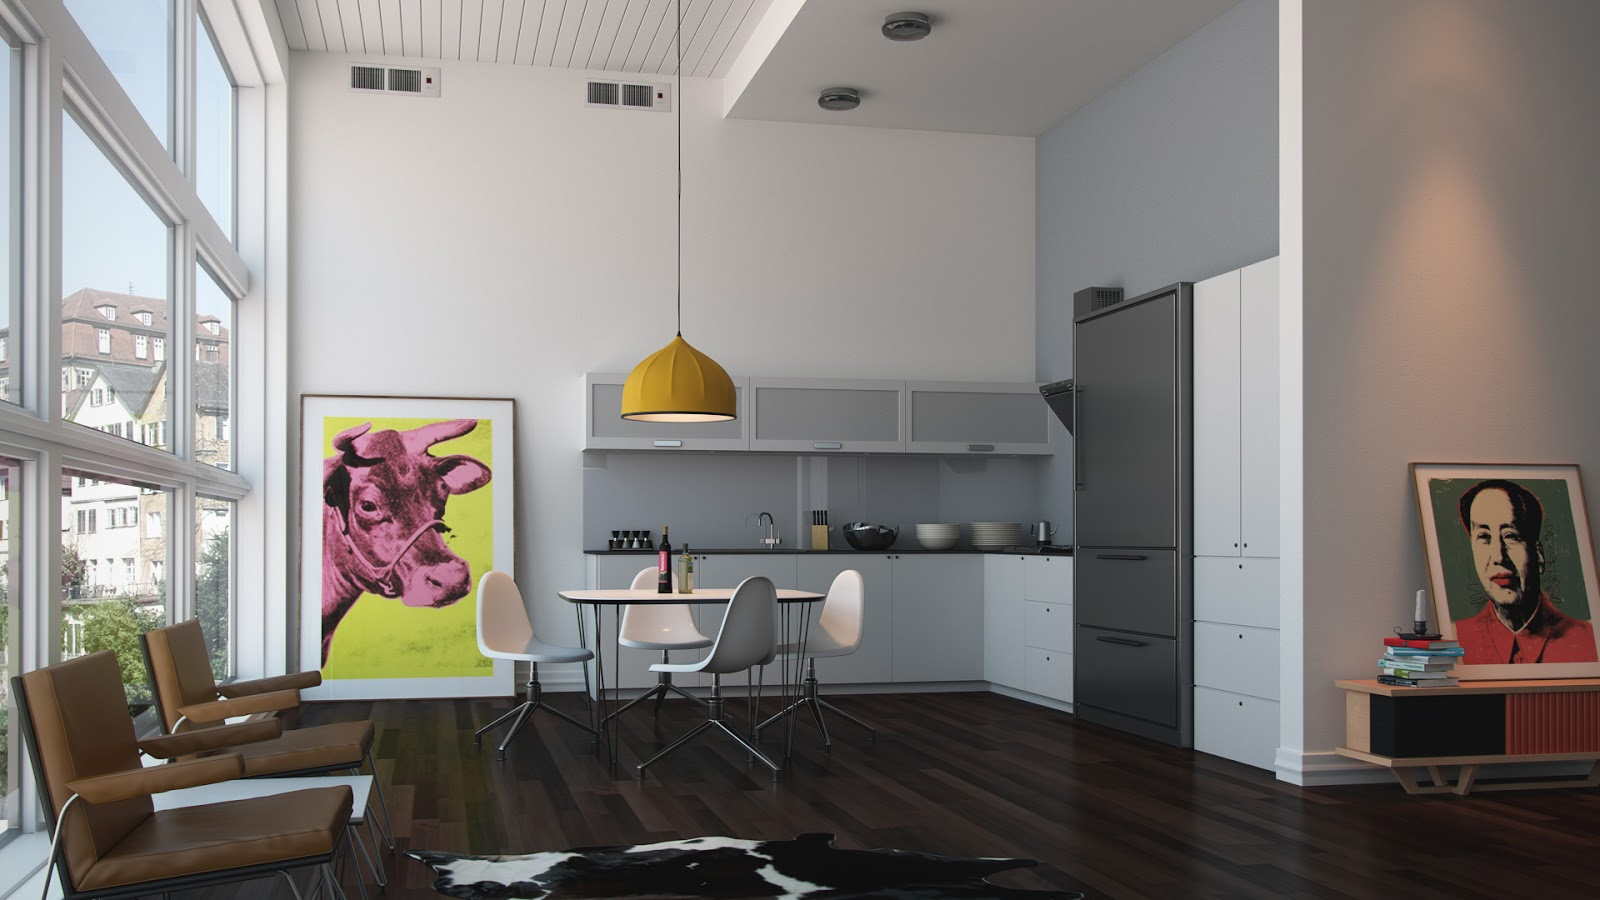 Download free 3ds max and vray interior scene cg daily news for 3d interior design online